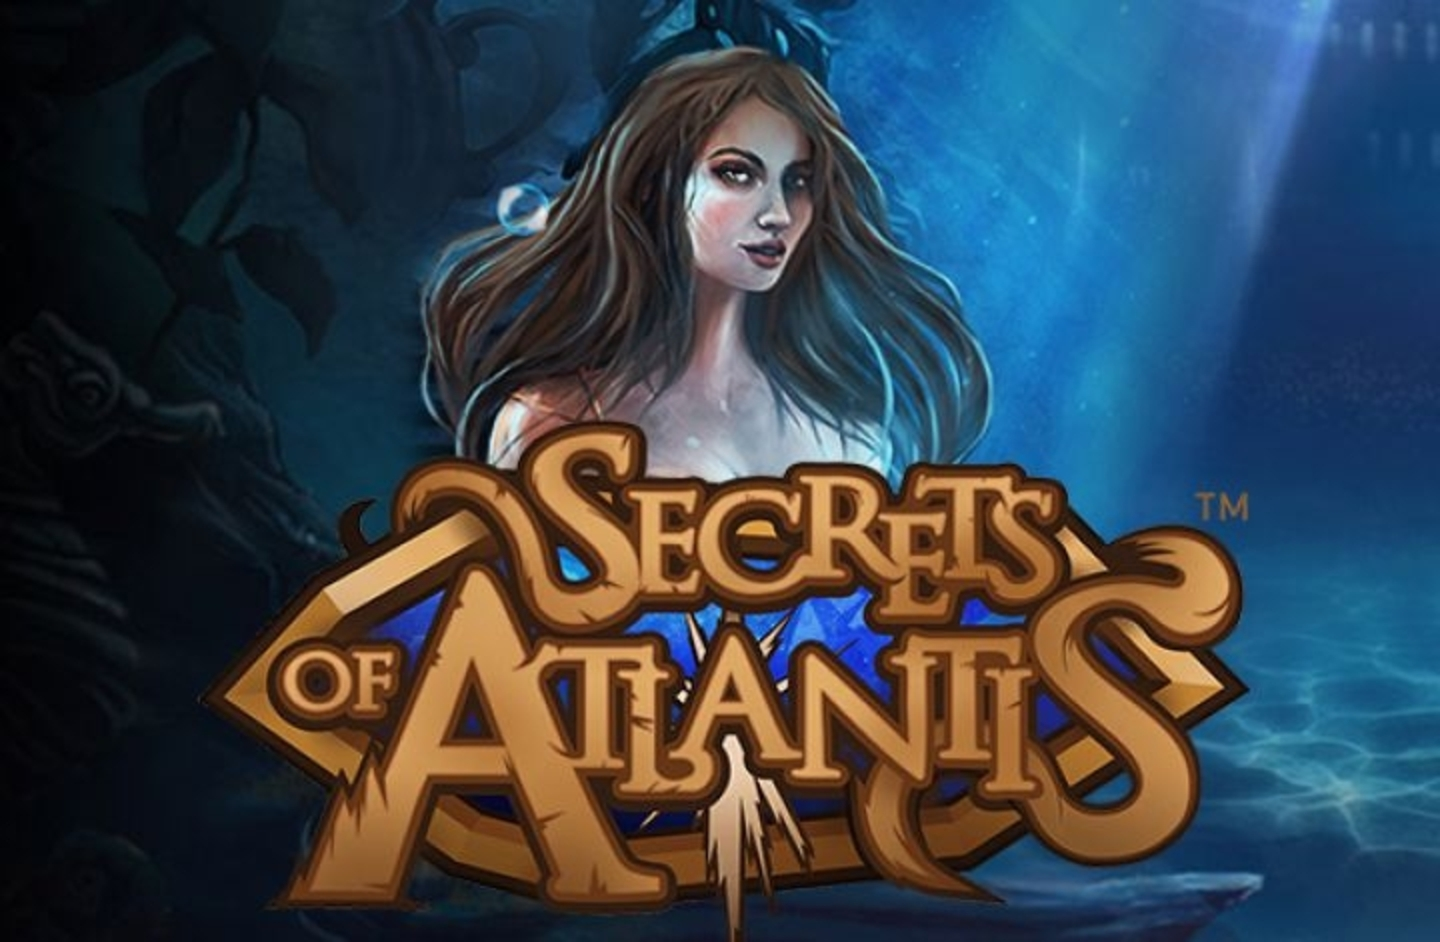 The Secrets of Atlantis Online Slot Demo Game by NetEnt